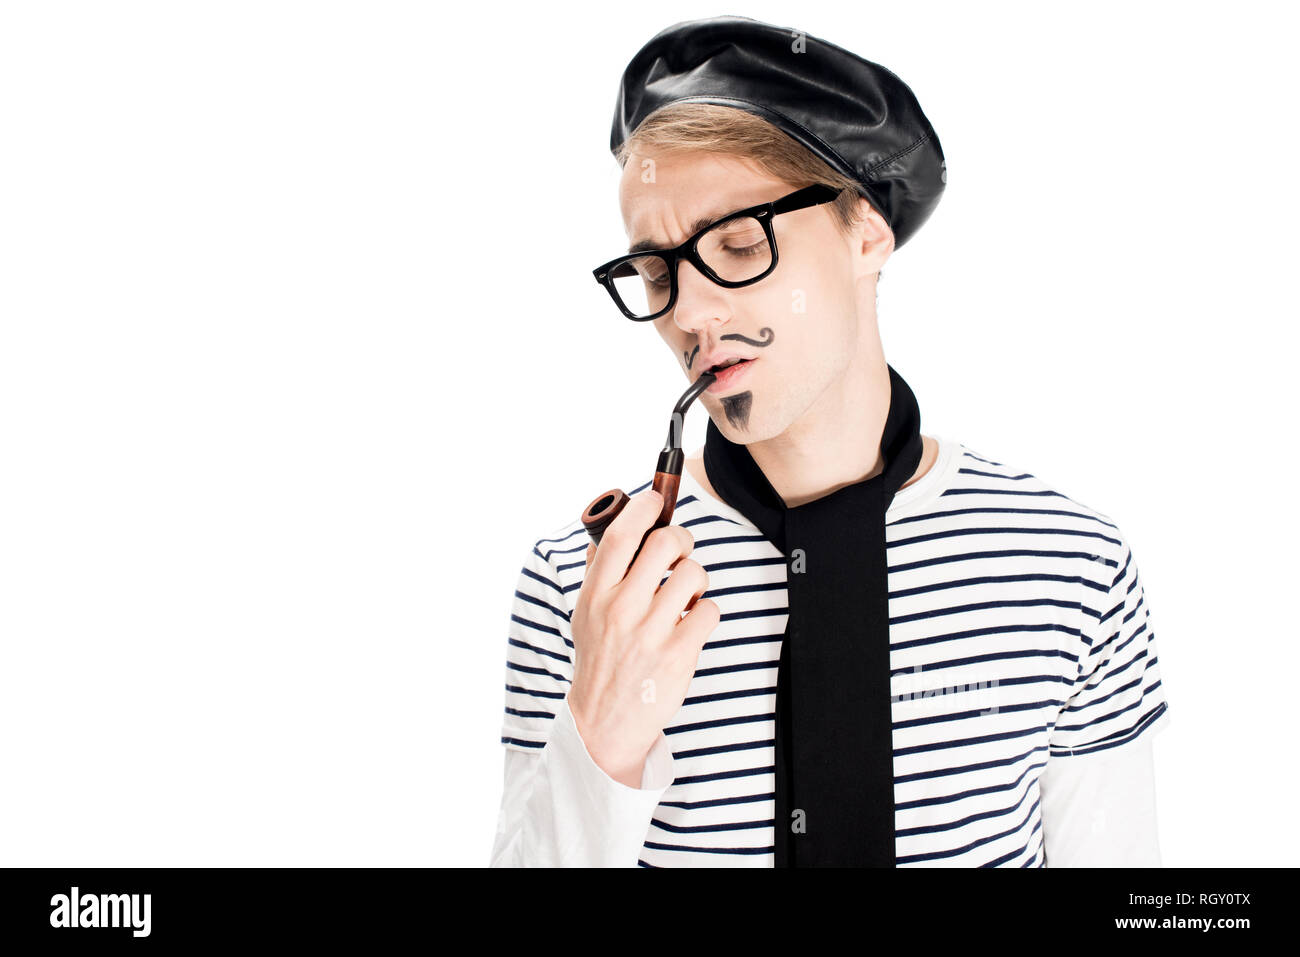 fe670ef4b307c handsome french man in glasses smoking pipe isolated on white - Stock Image